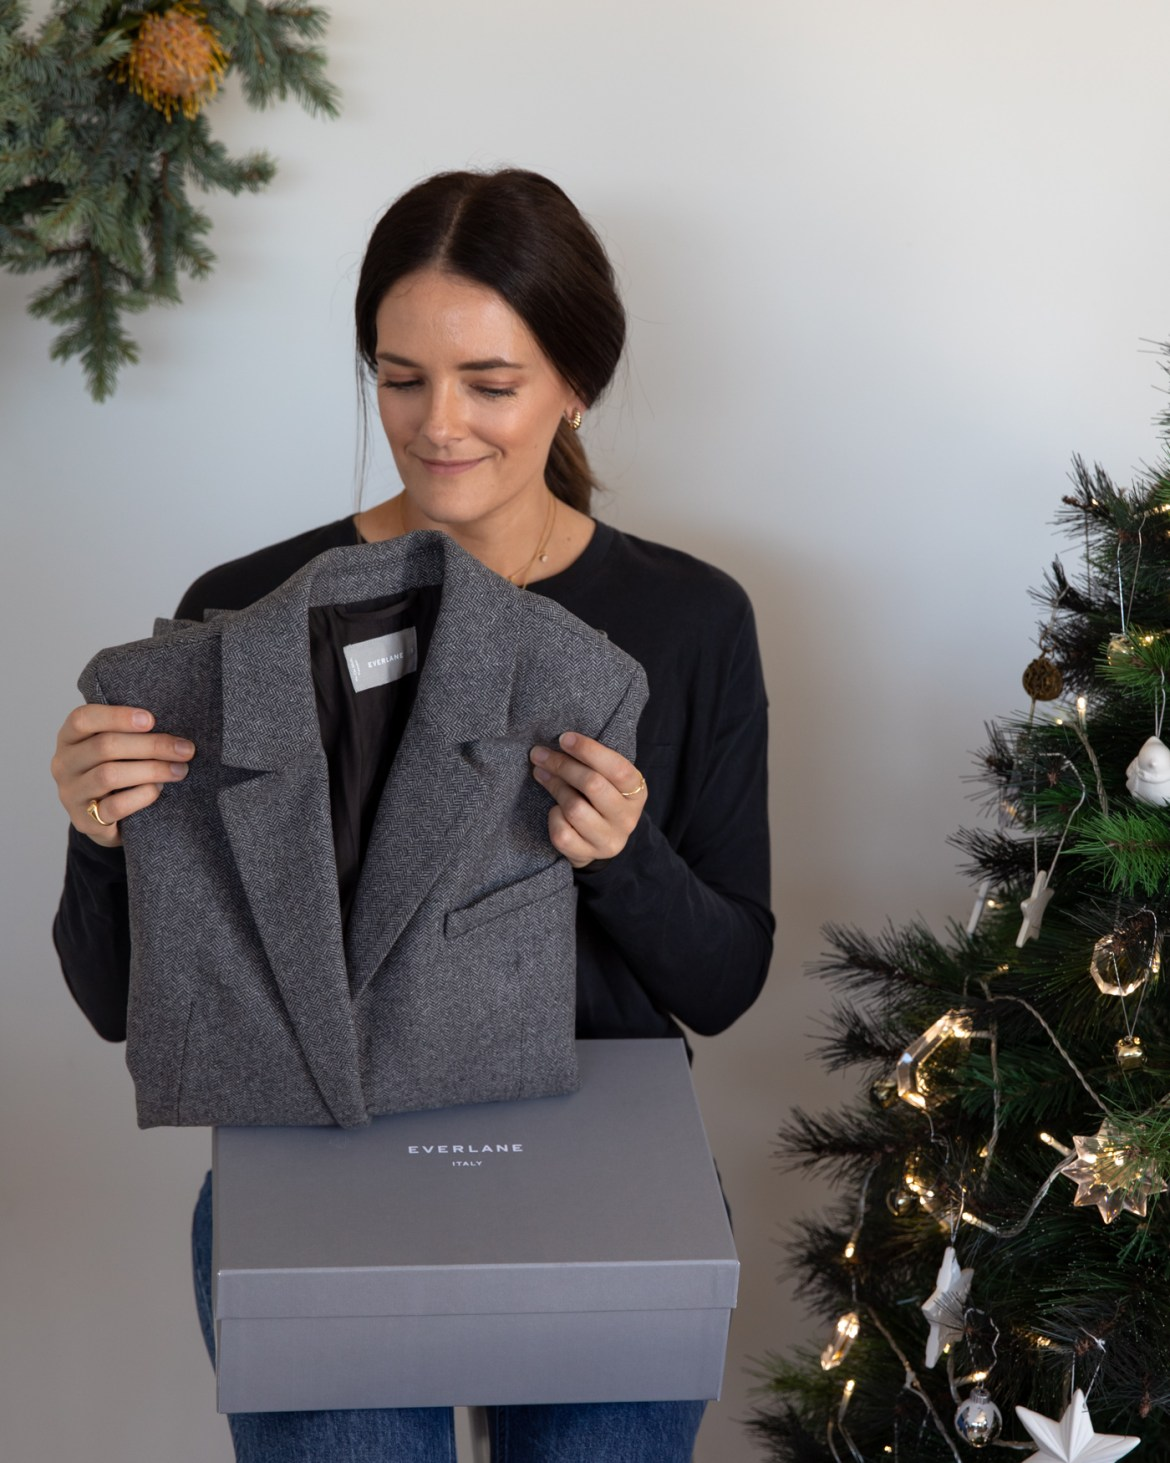 women's gift guide from Everlane the Oversized Blazer in grey herringbone